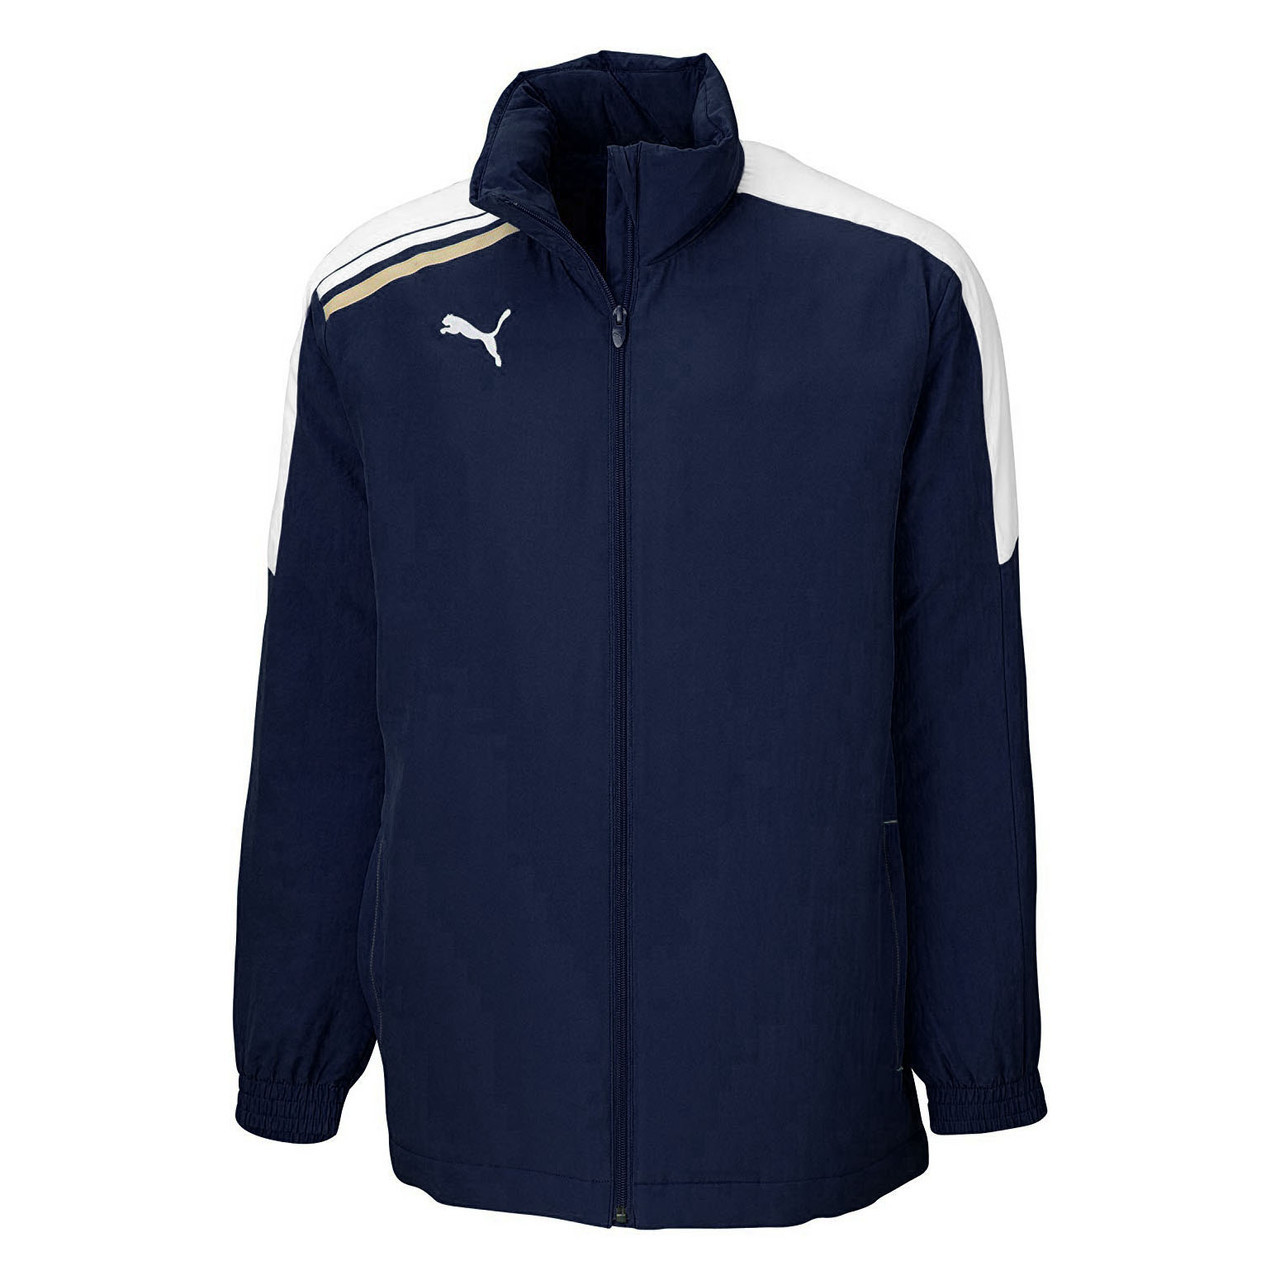 Куртка Puma Esito Stadium Jacket 652602 L Navy